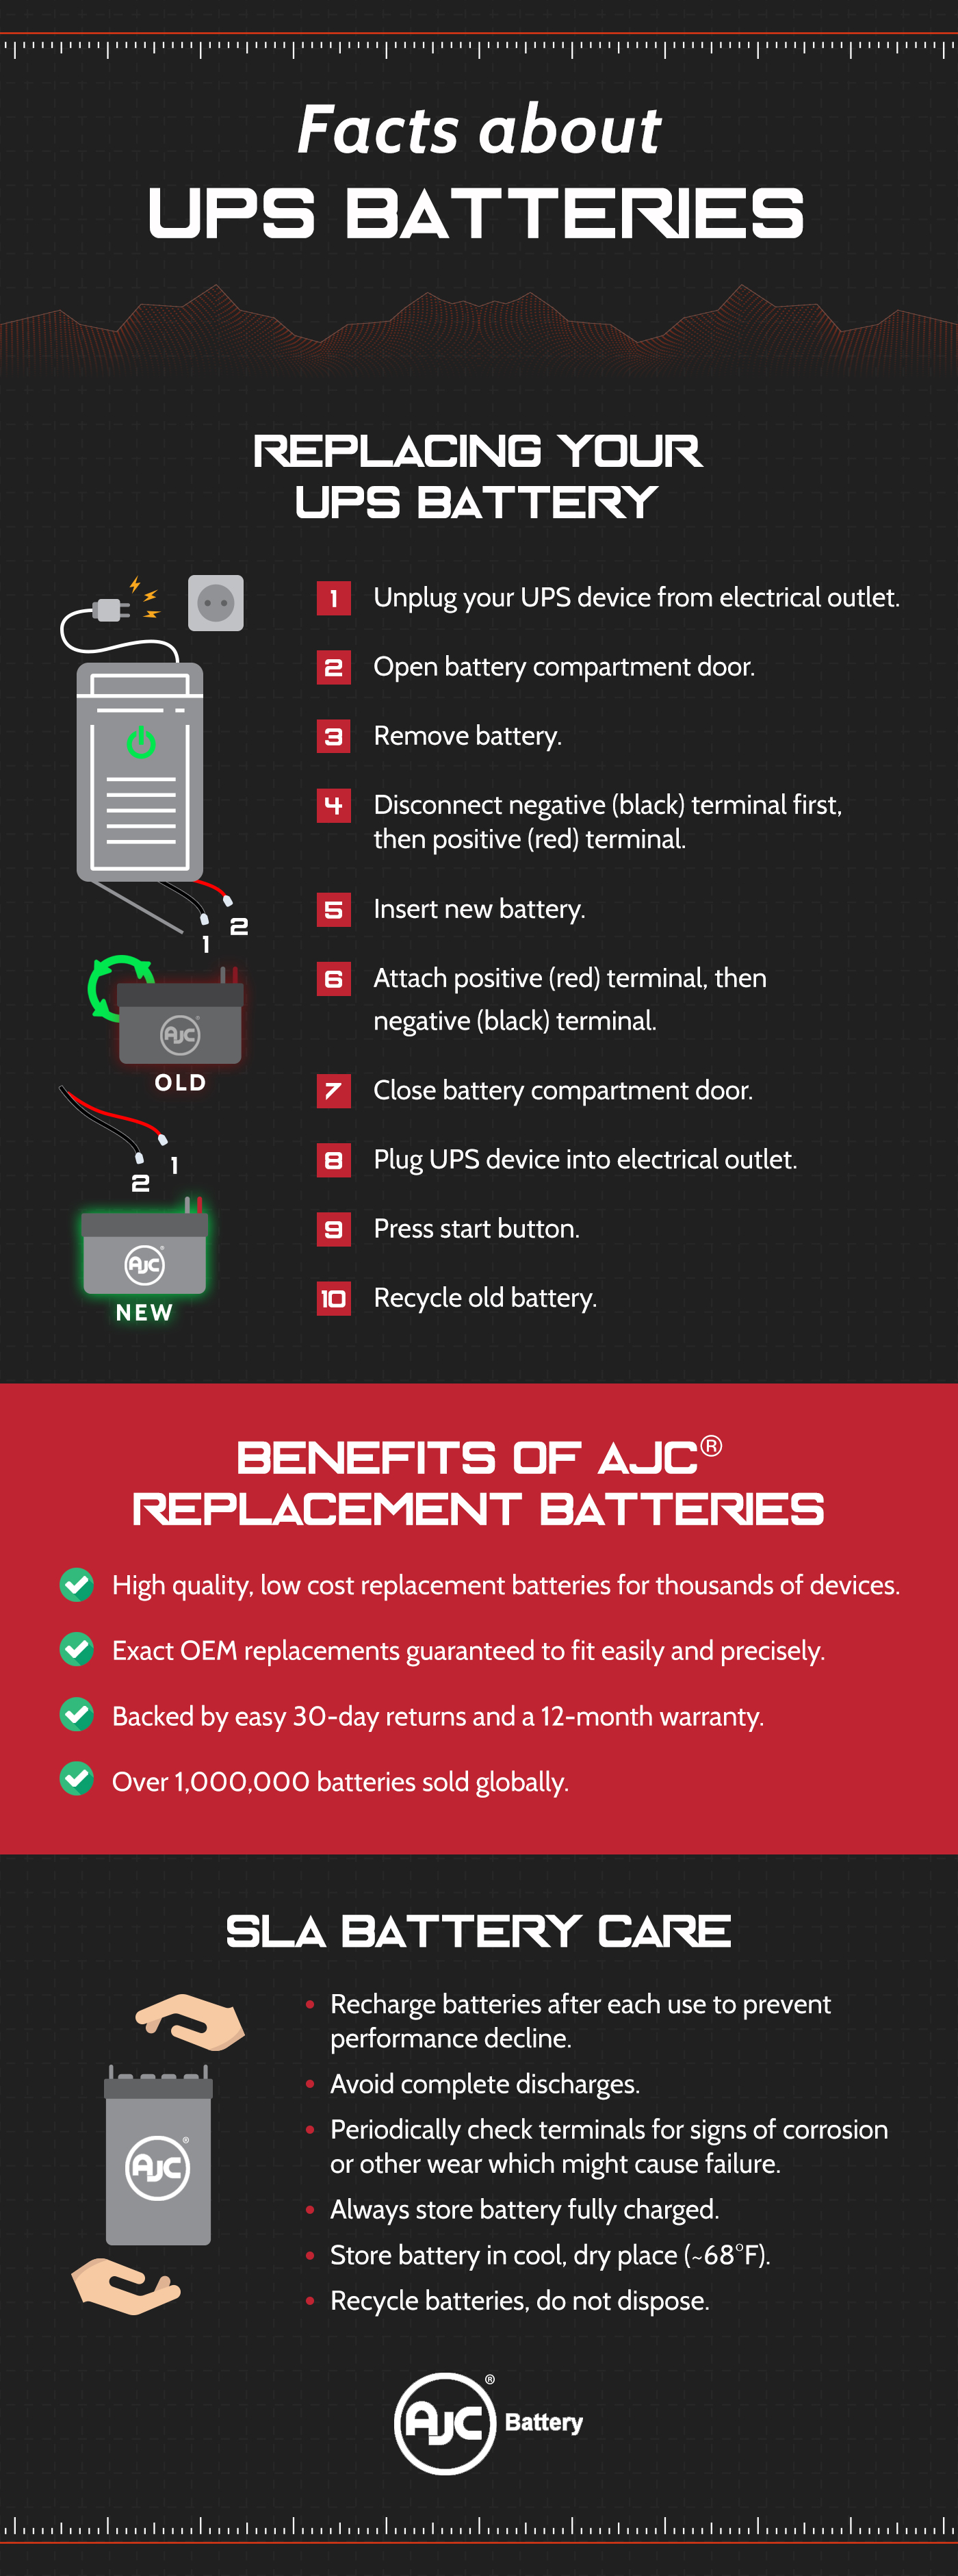 UPS Battery Replacement - AJC® Batteries